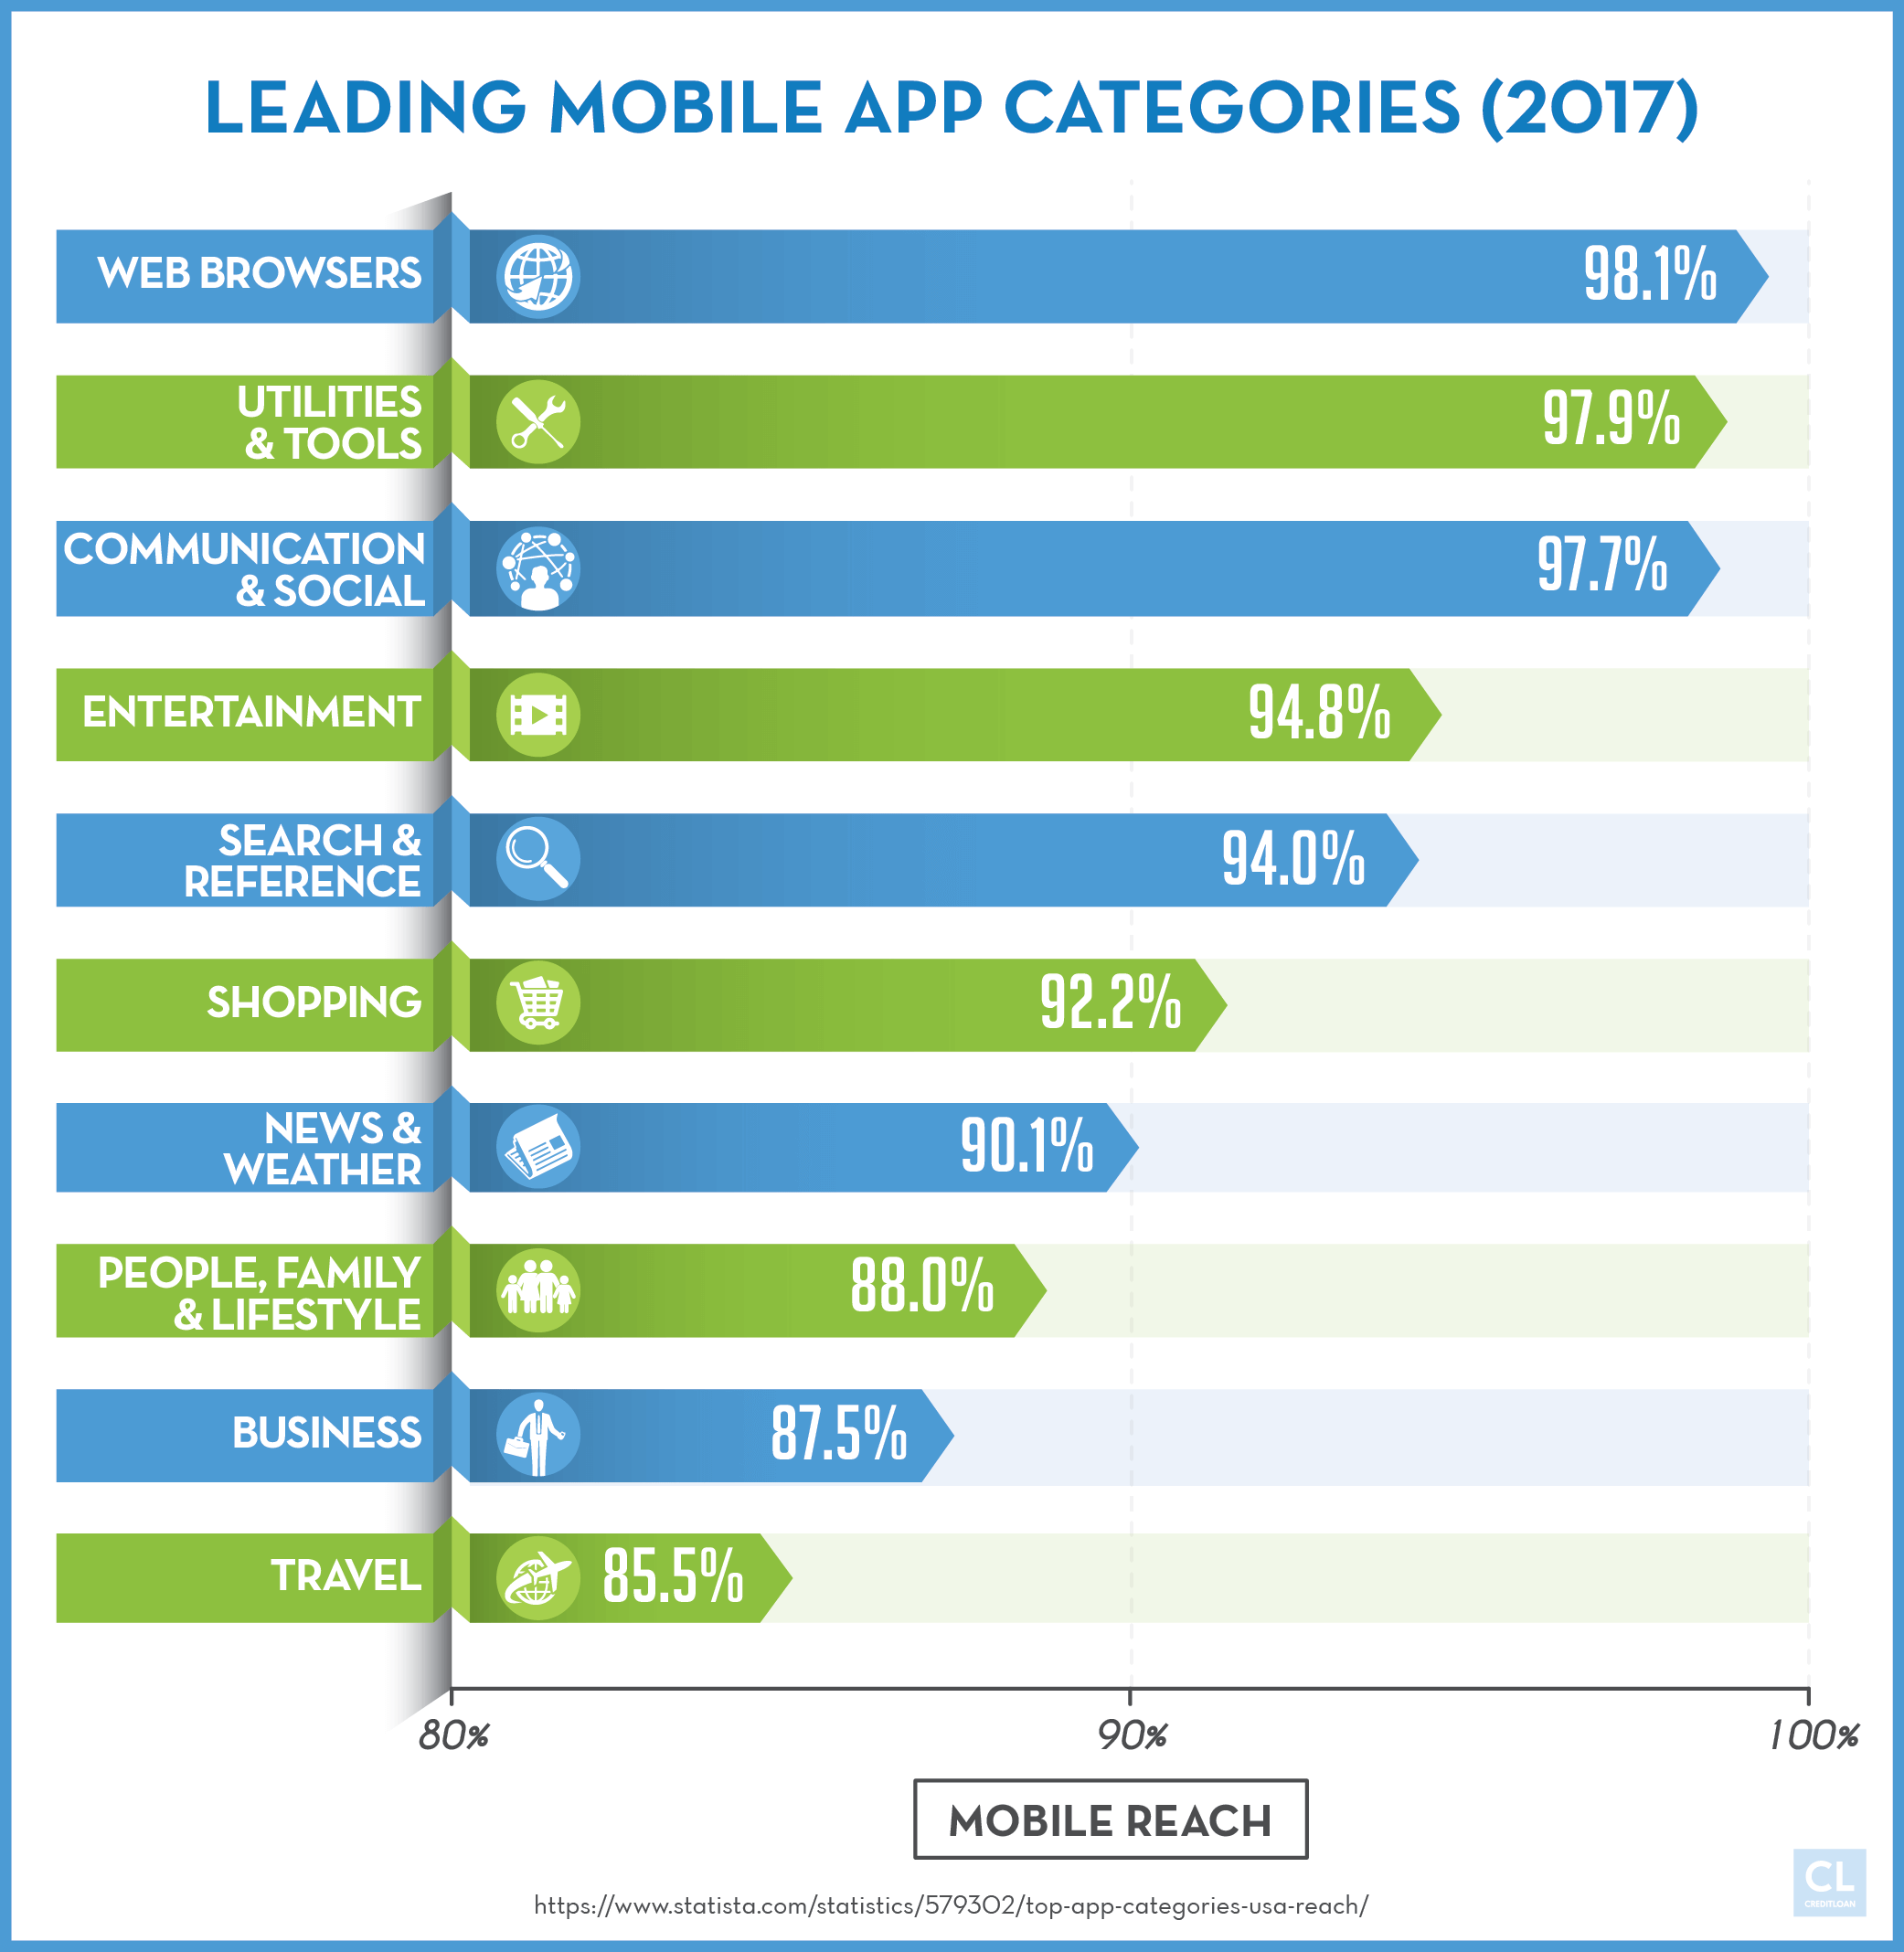 2017 Leading Mobile App Categories